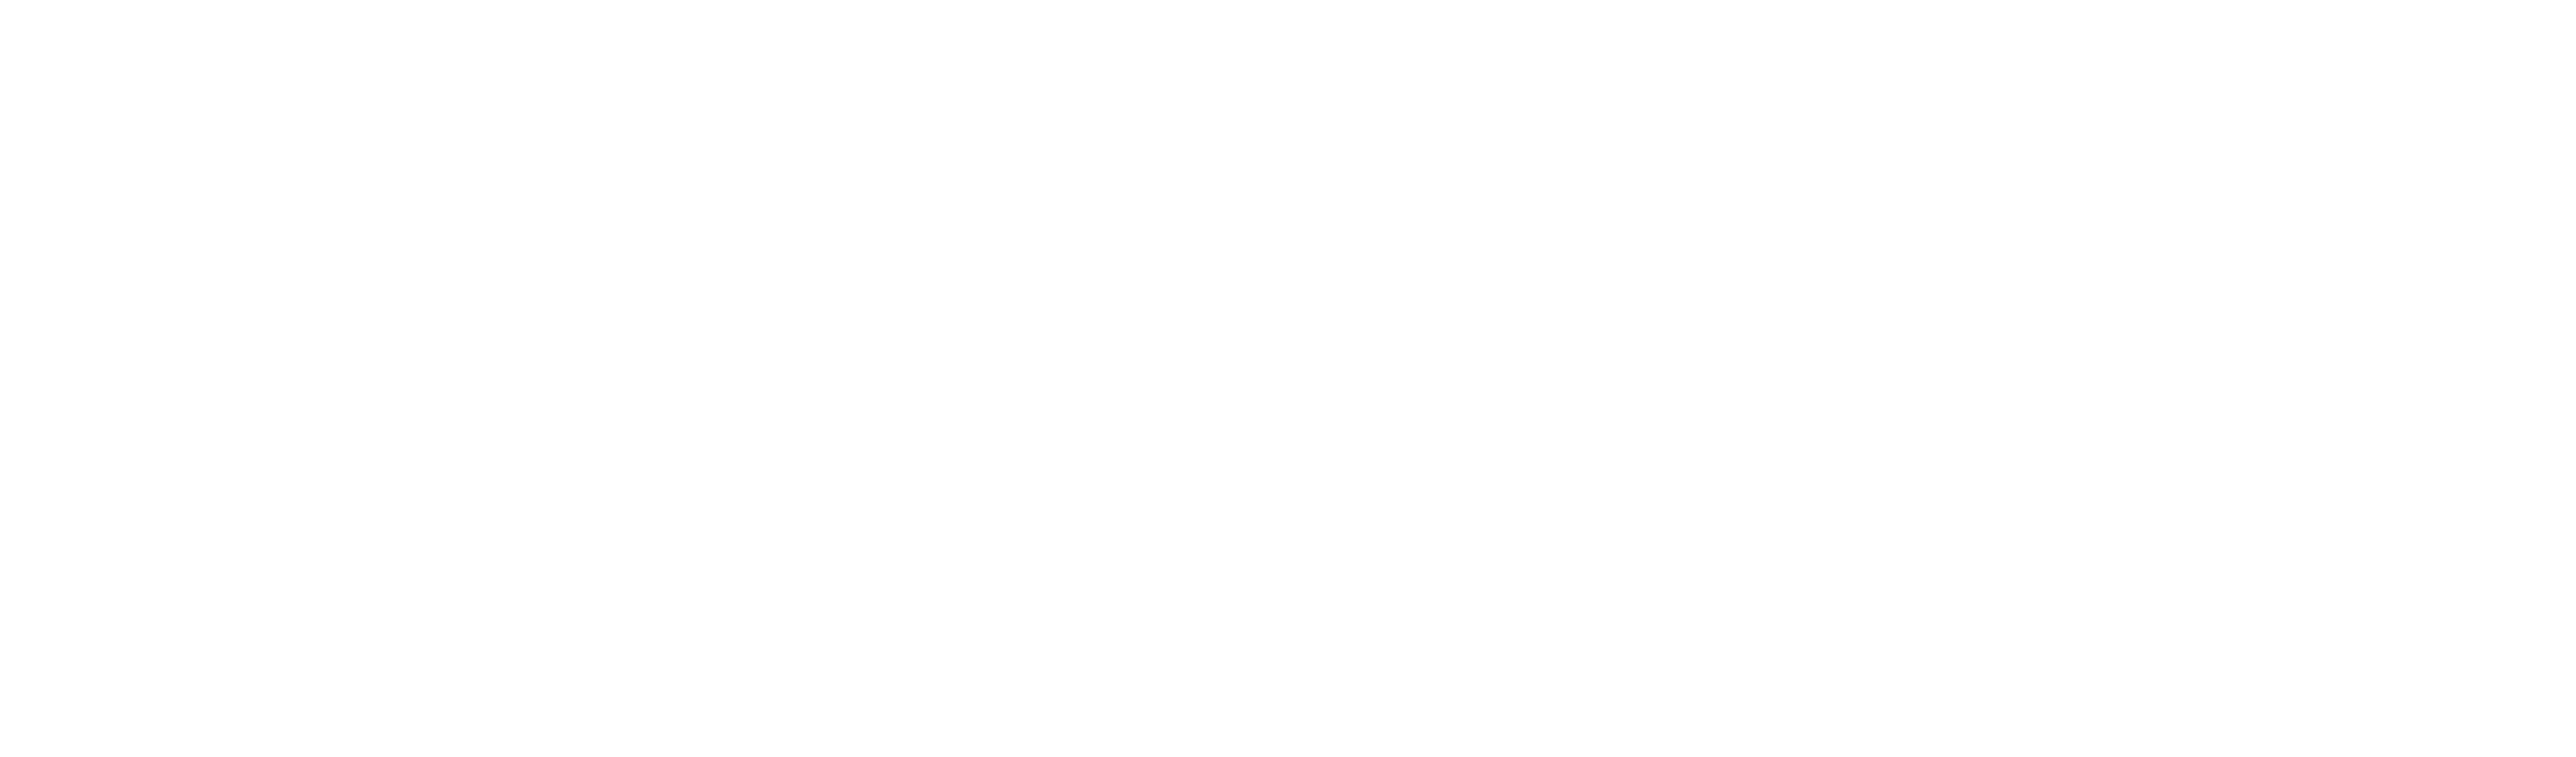 Northside Flower Shop - Flower Delivery in Radford, VA